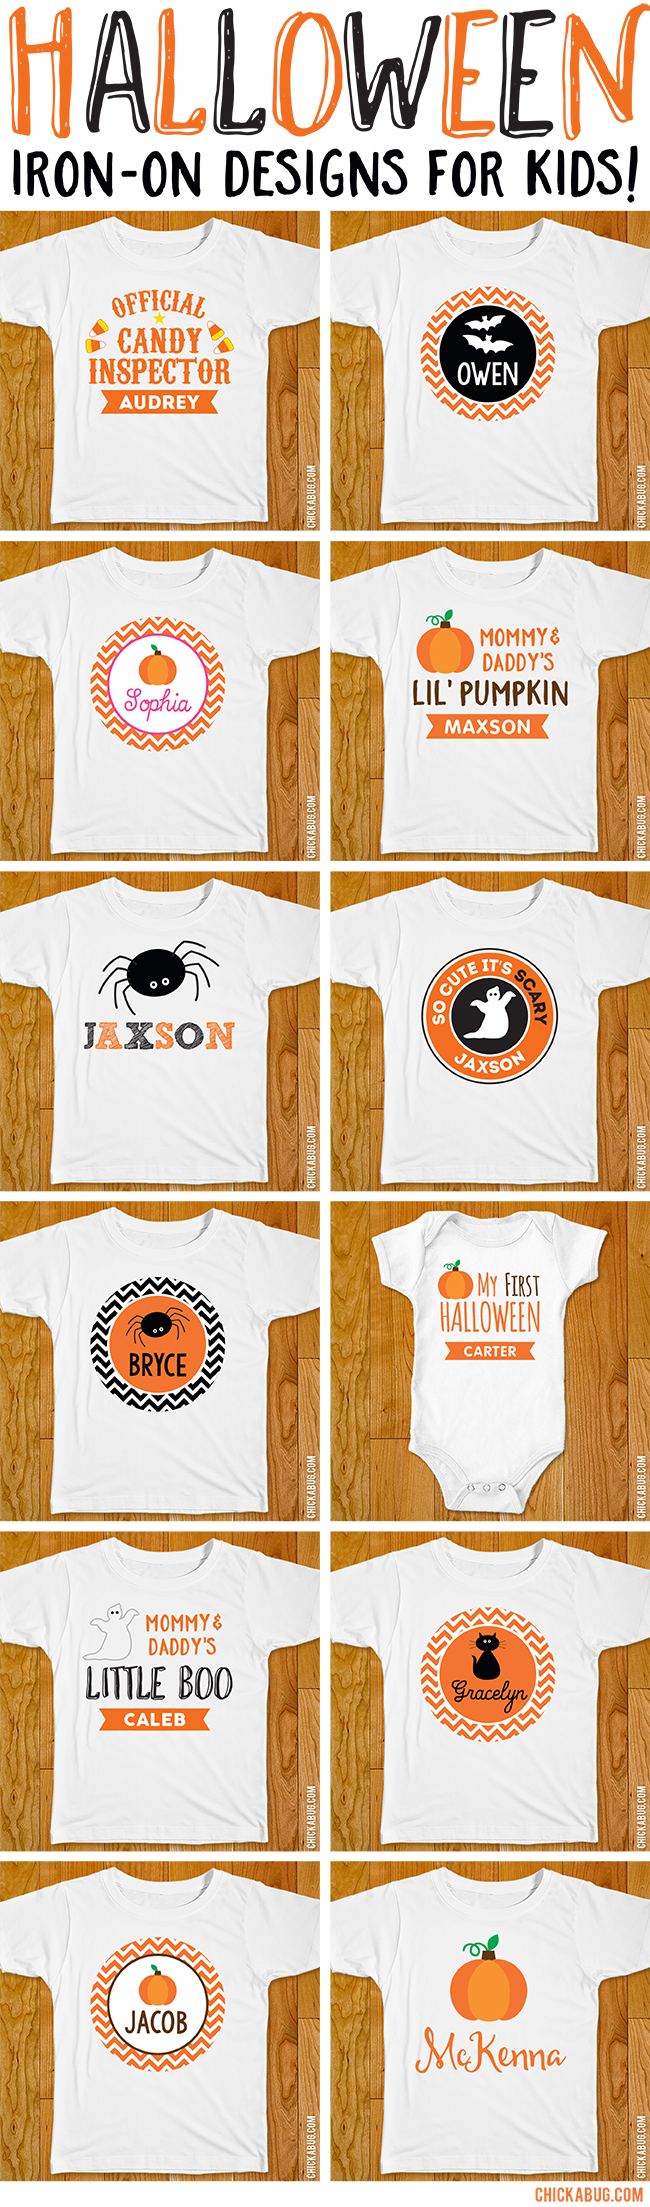 Halloween iron-on designs for kids. Make special Halloween shirts with these super cute personalized designs!